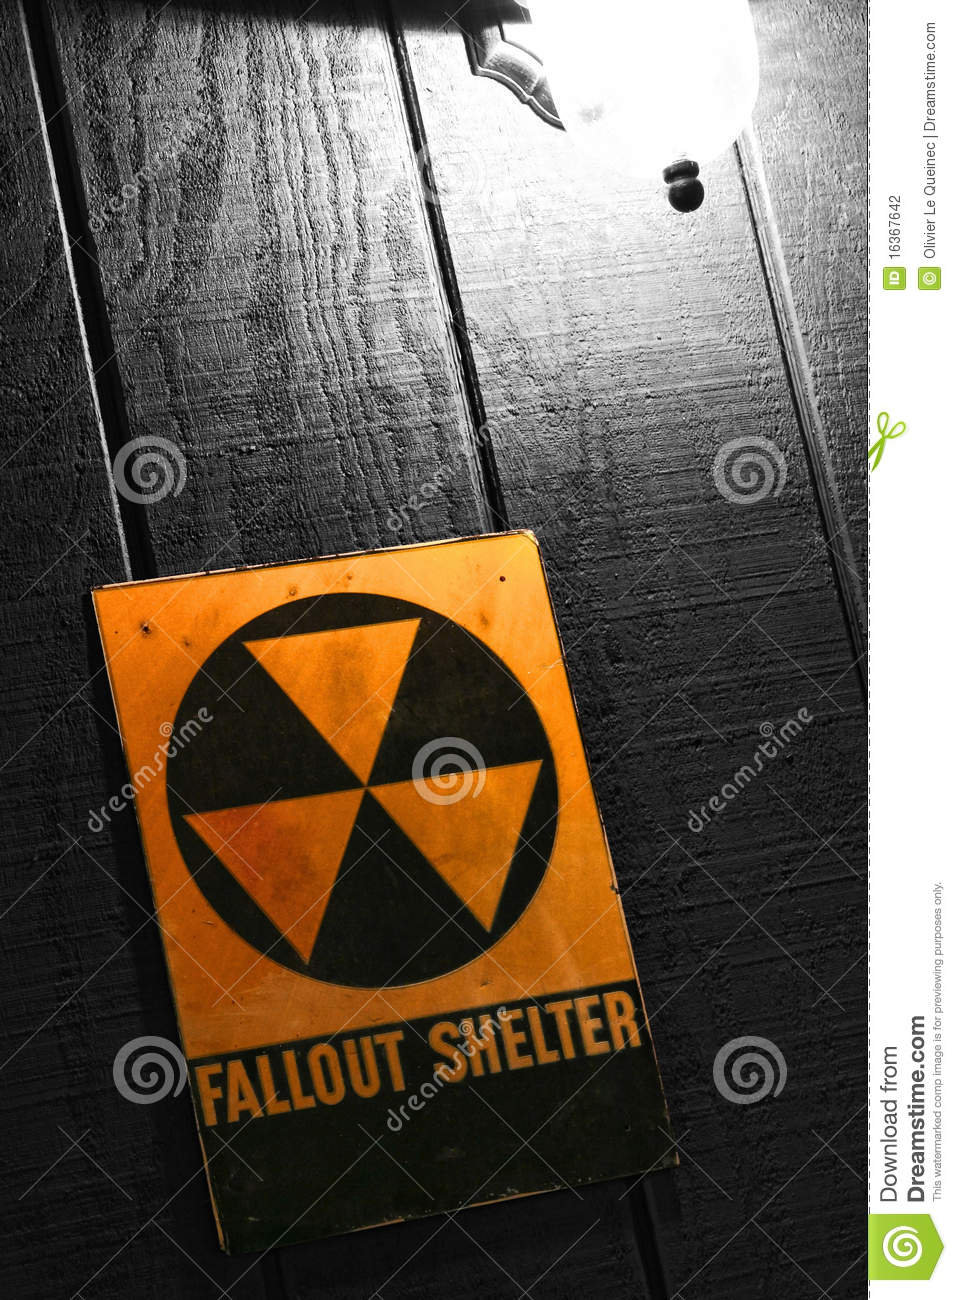 Vintage Fallout Nuclear Bomb Shelter Sign Stock ...